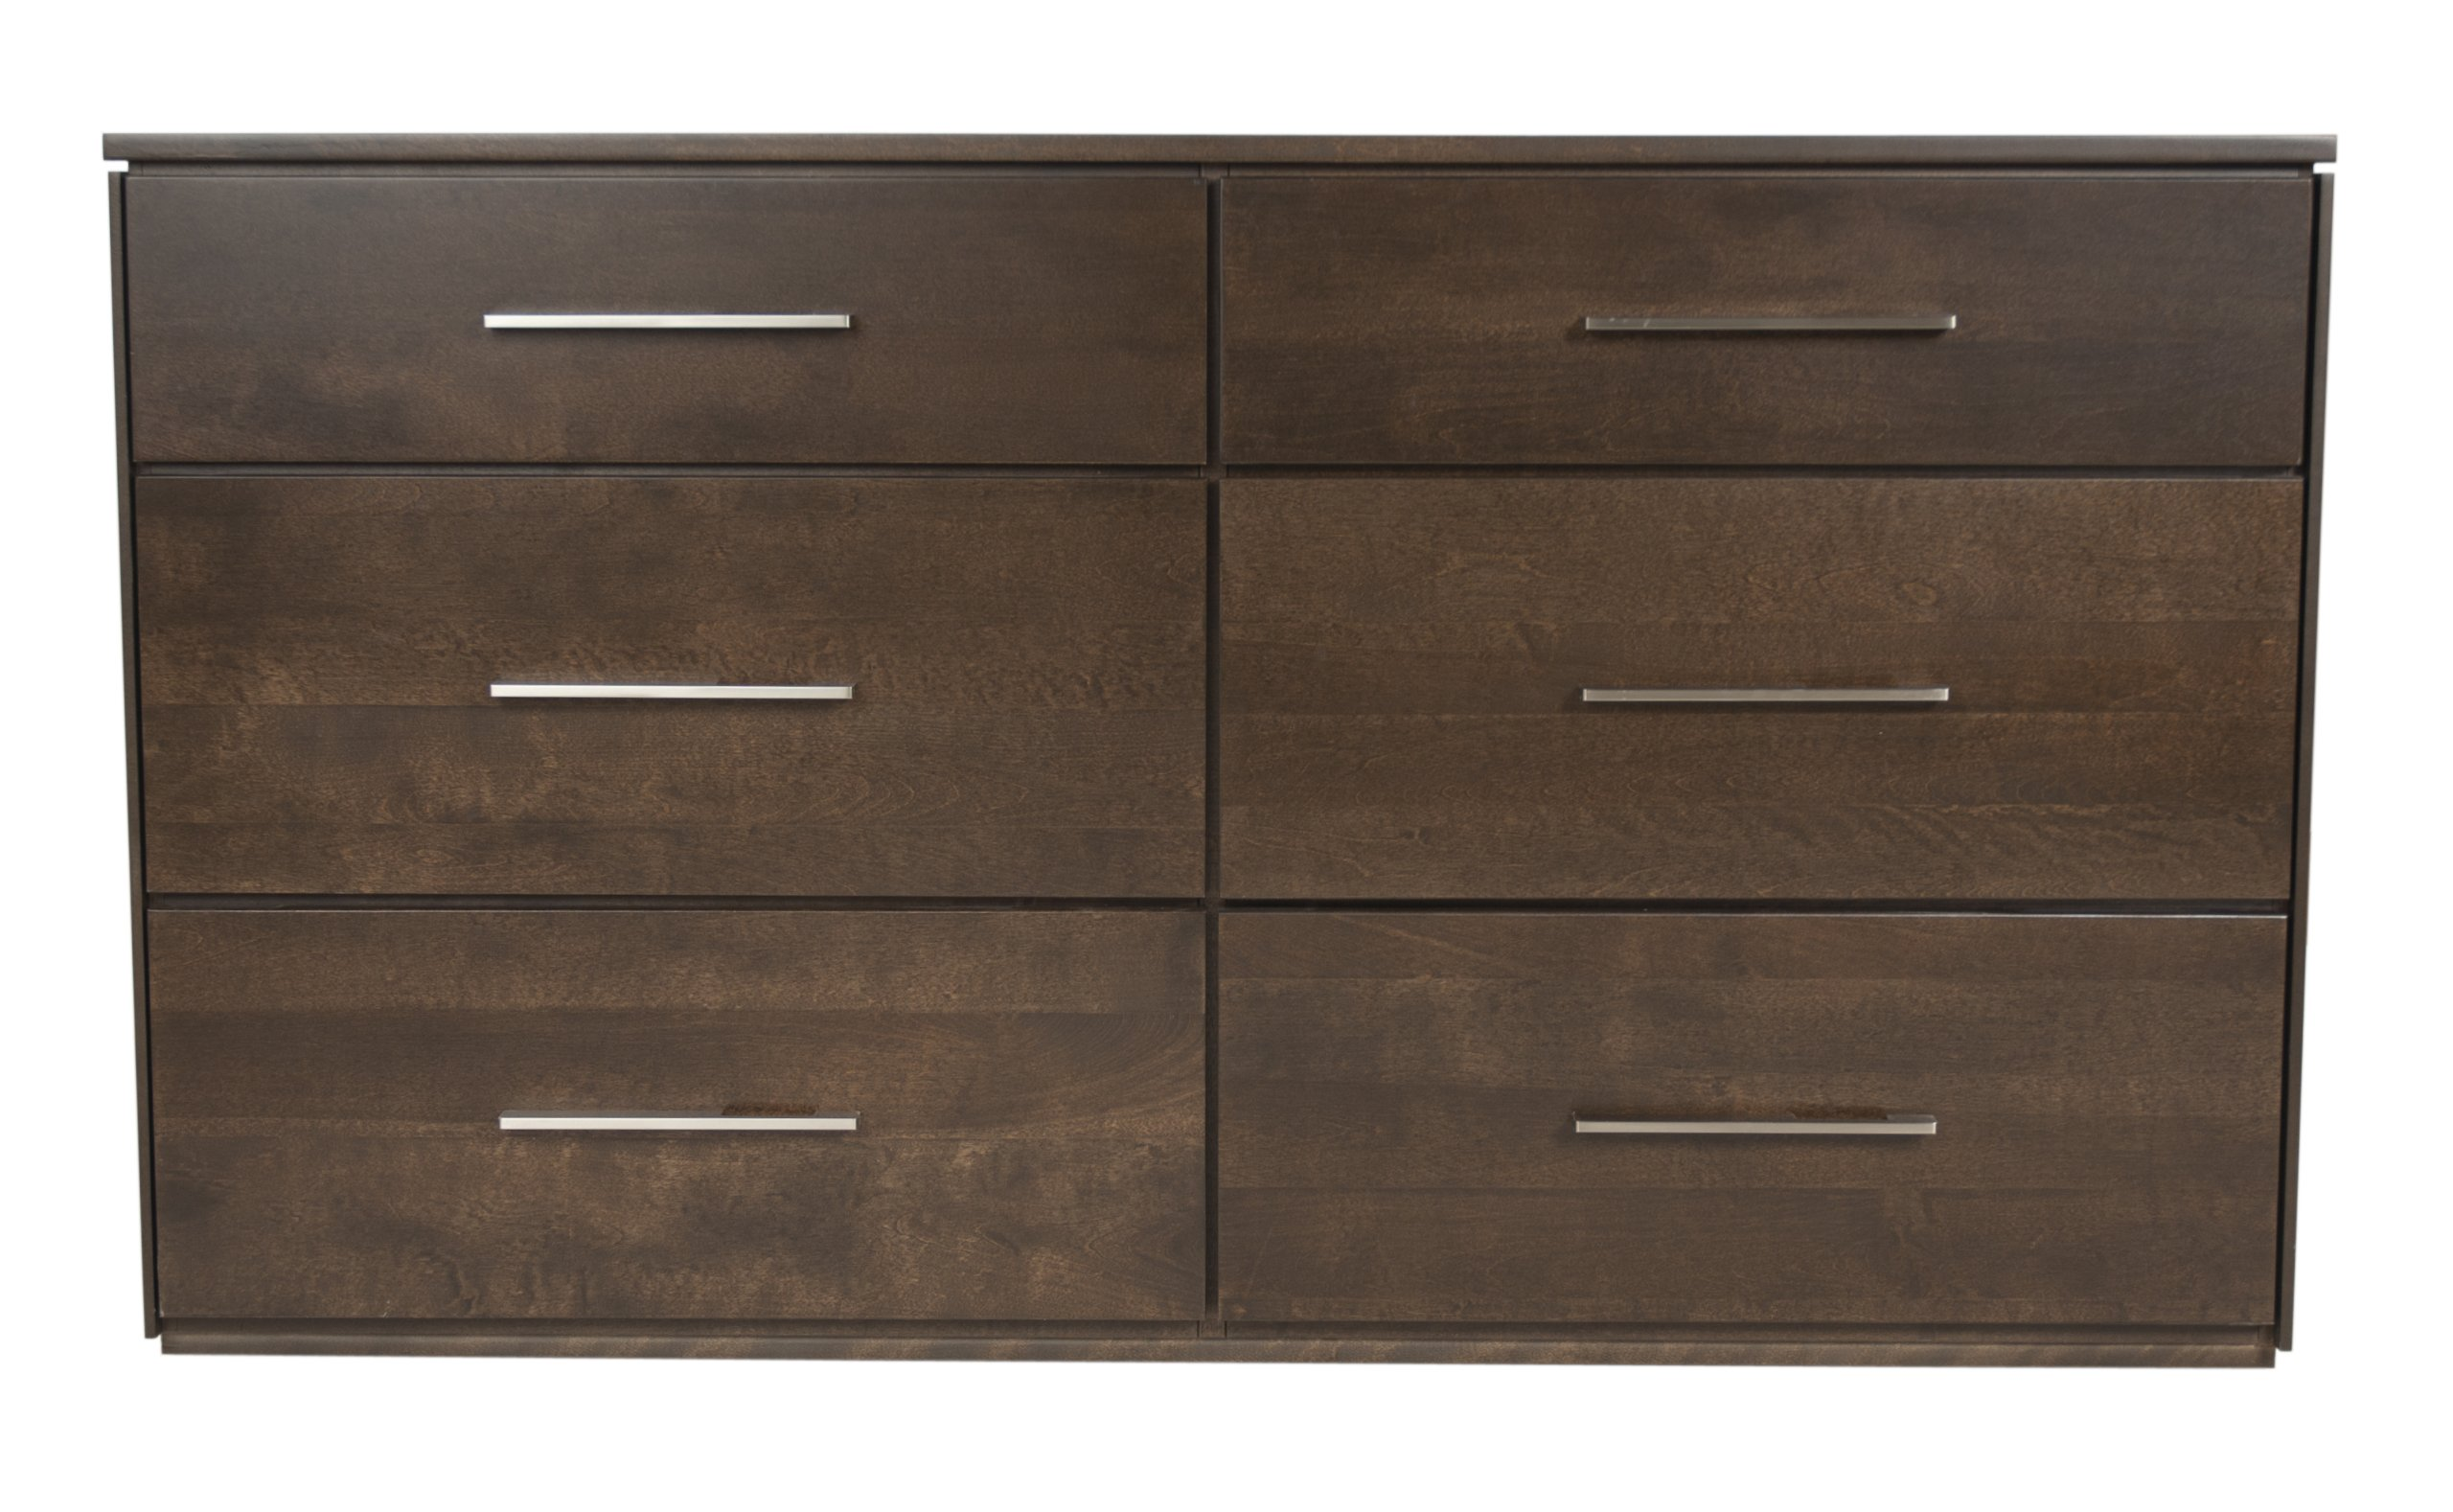 Offspring York 6 Drawer Double Dresser, Cocoa